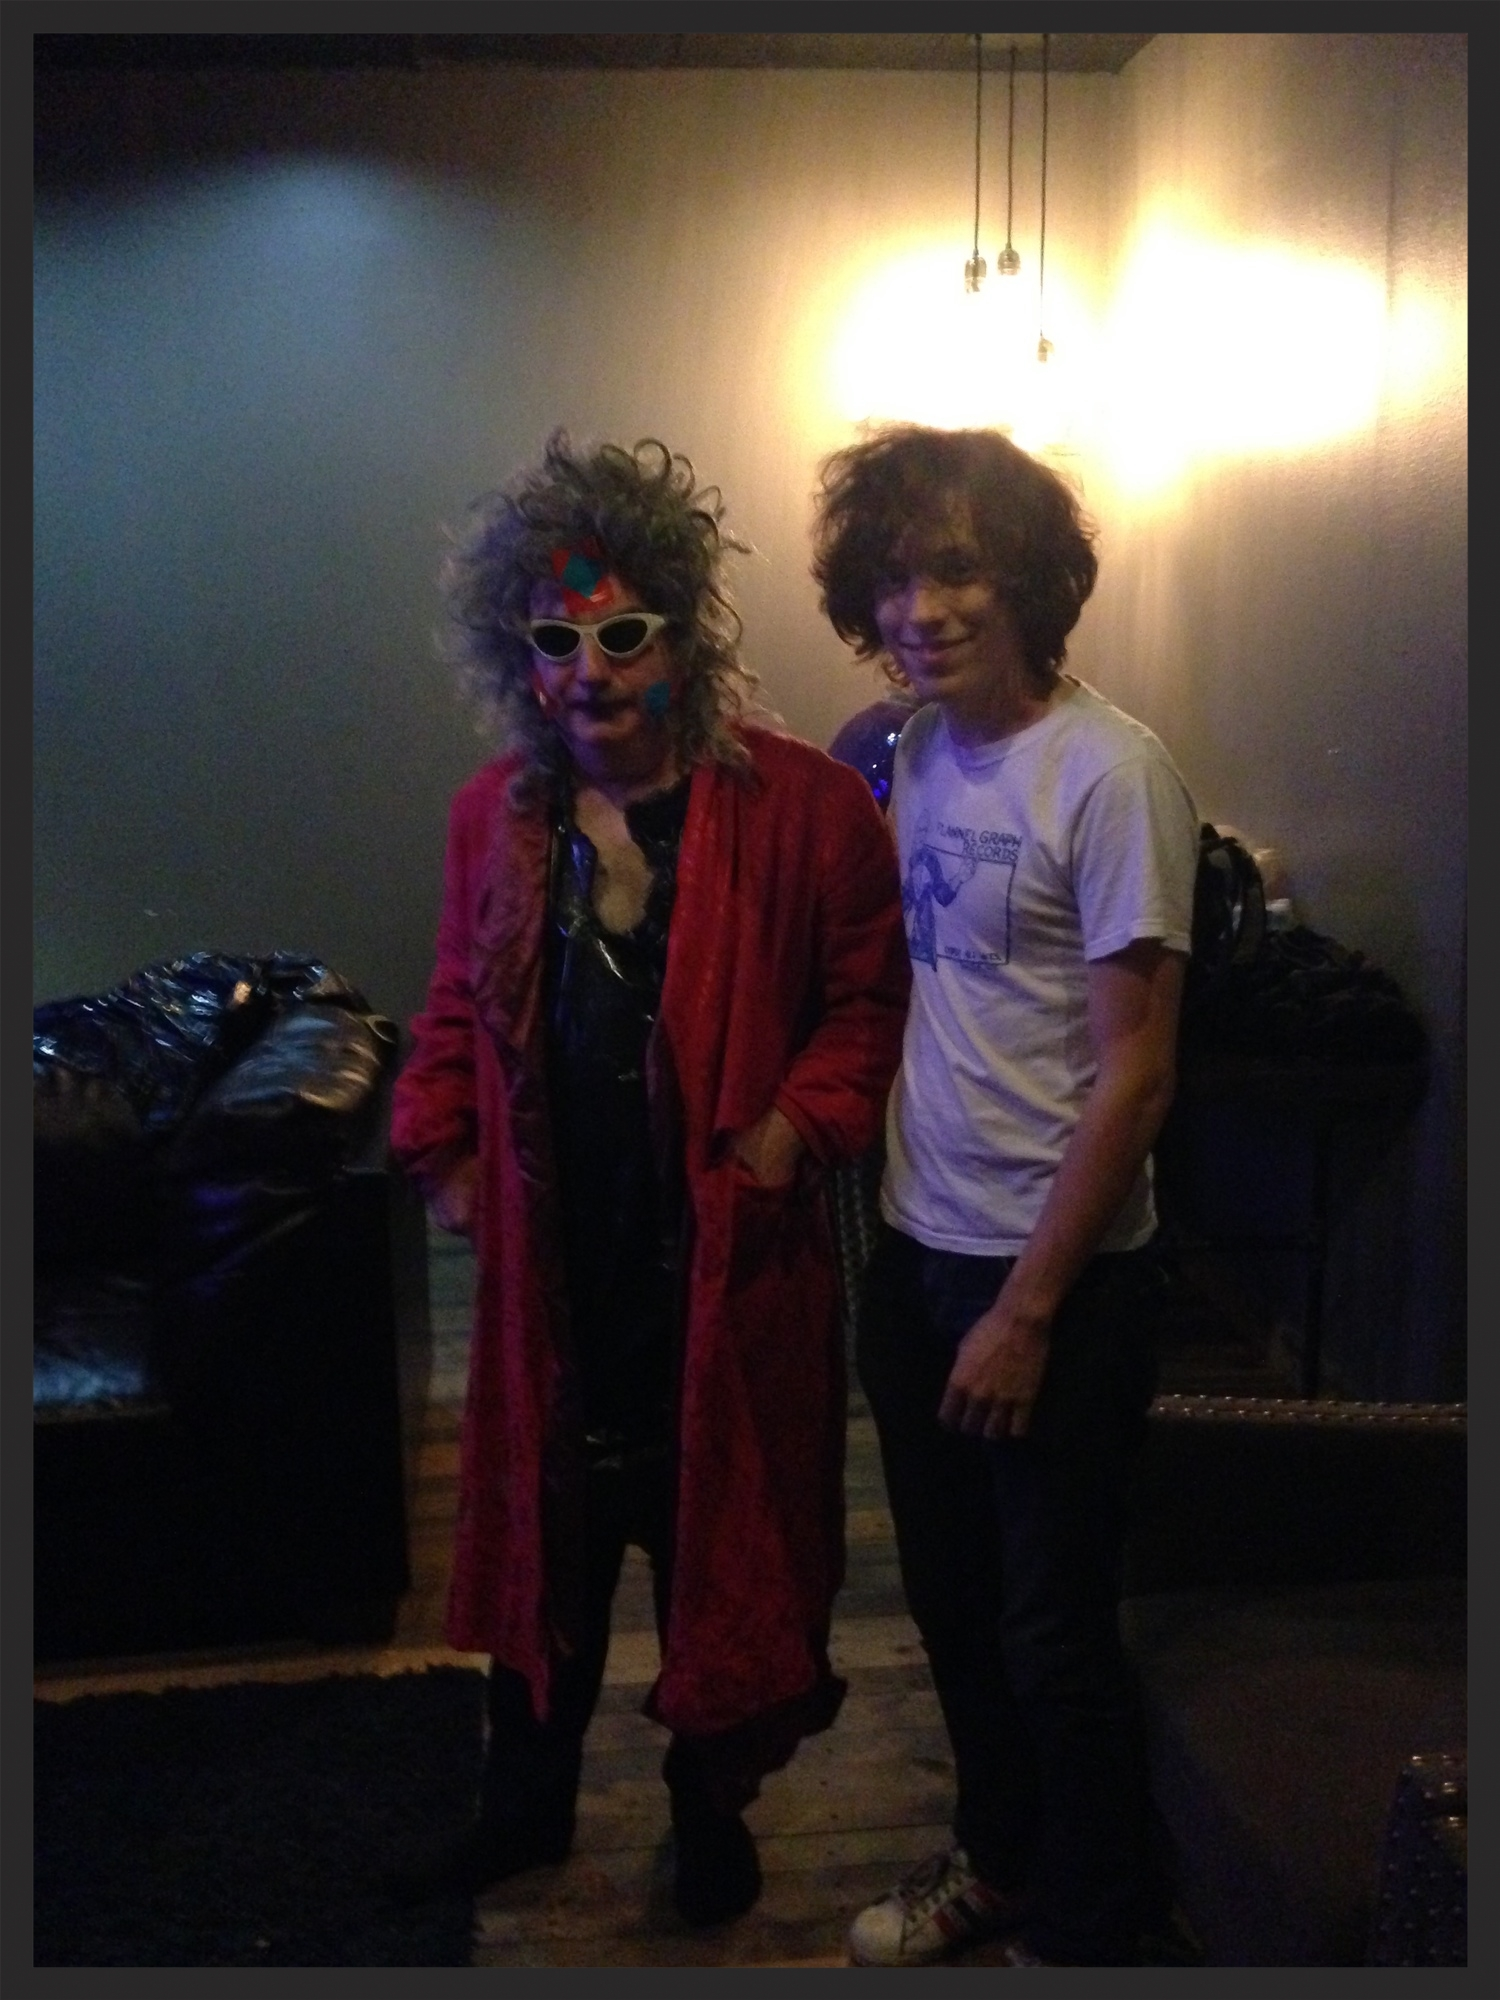 Gary Wilson and Rado from Foxygen, backstage at the Observatory.